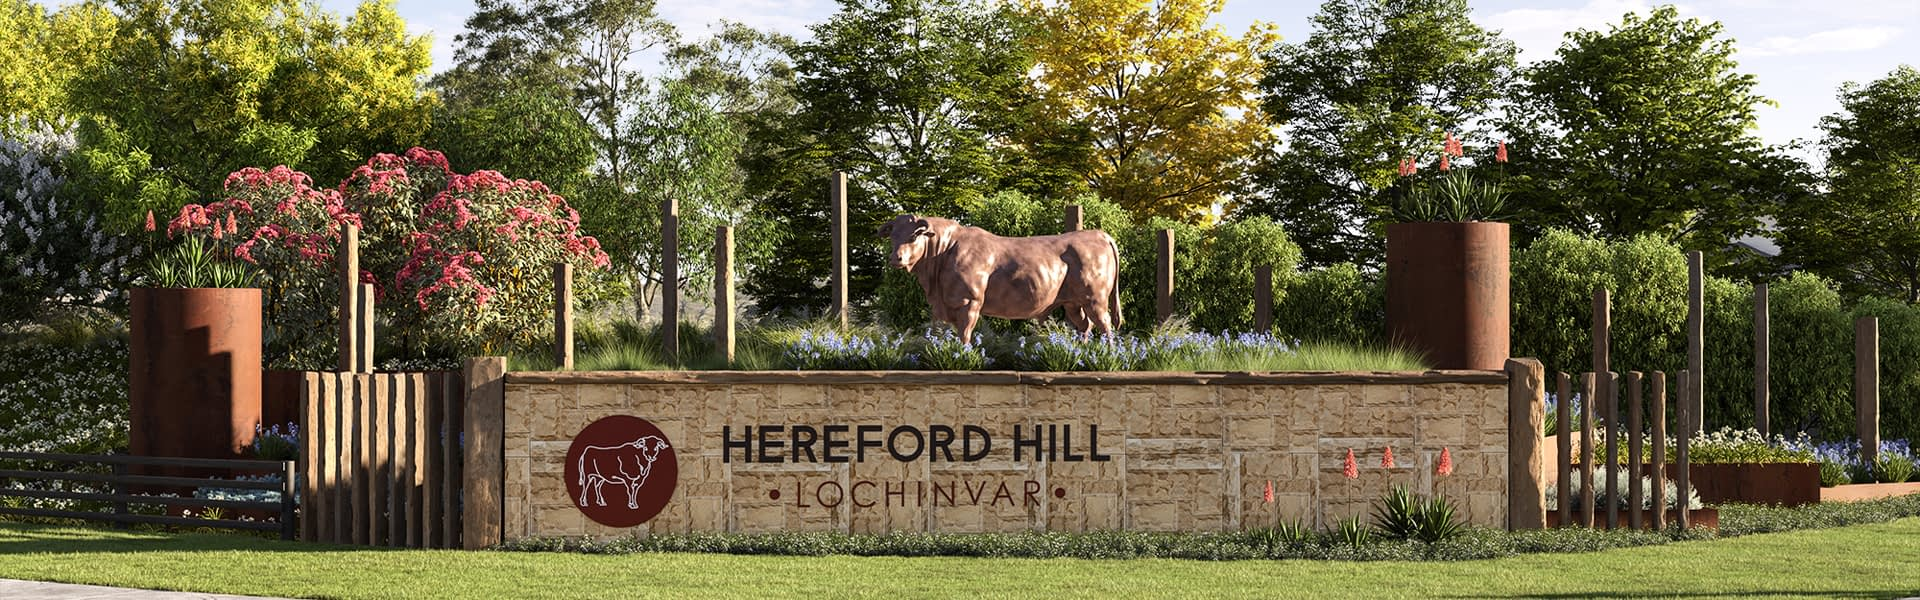 Hereford Hill Lochinvar NSW